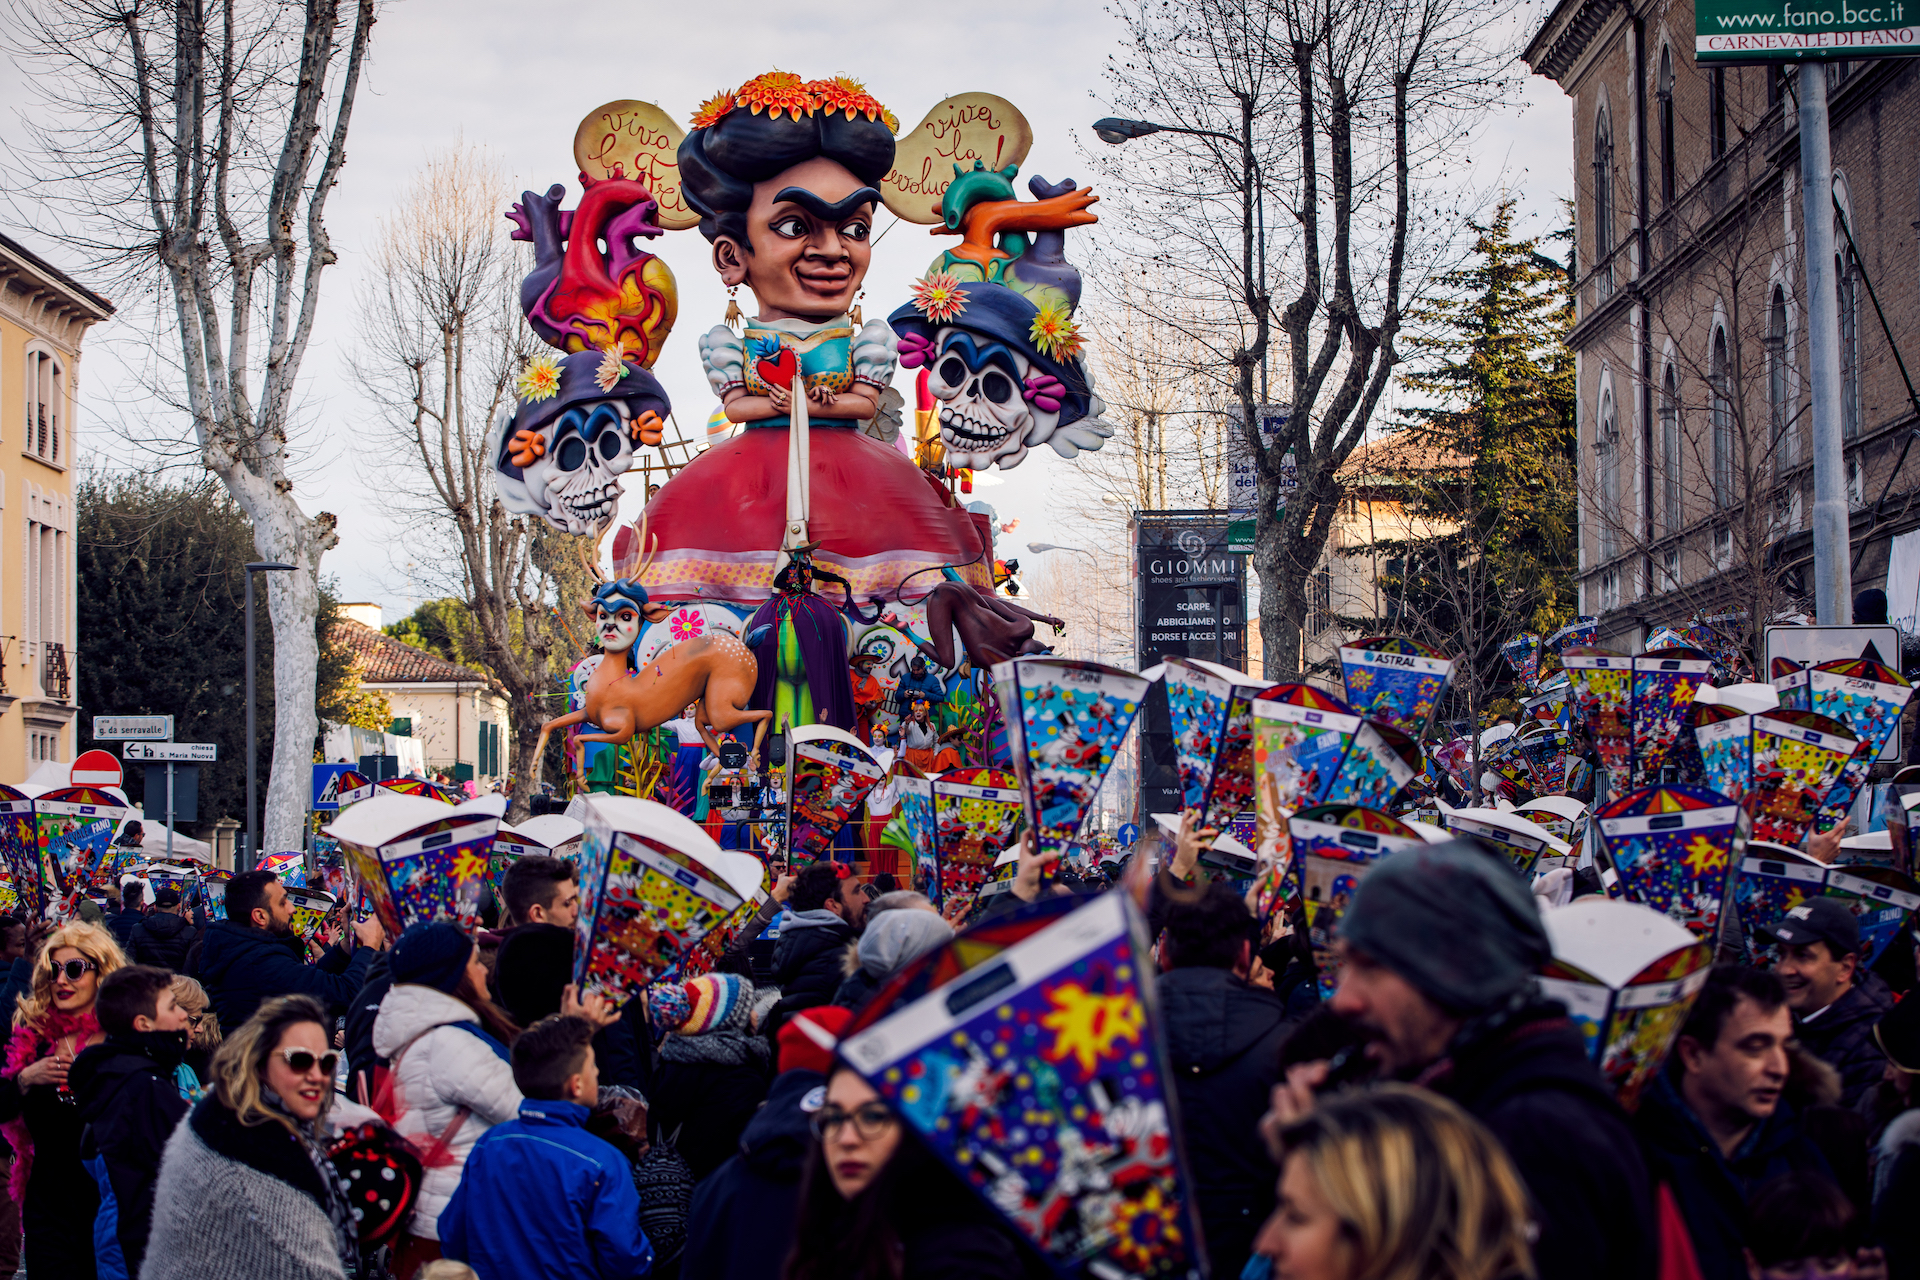 Fano – The most ancient Carnival in Italy.